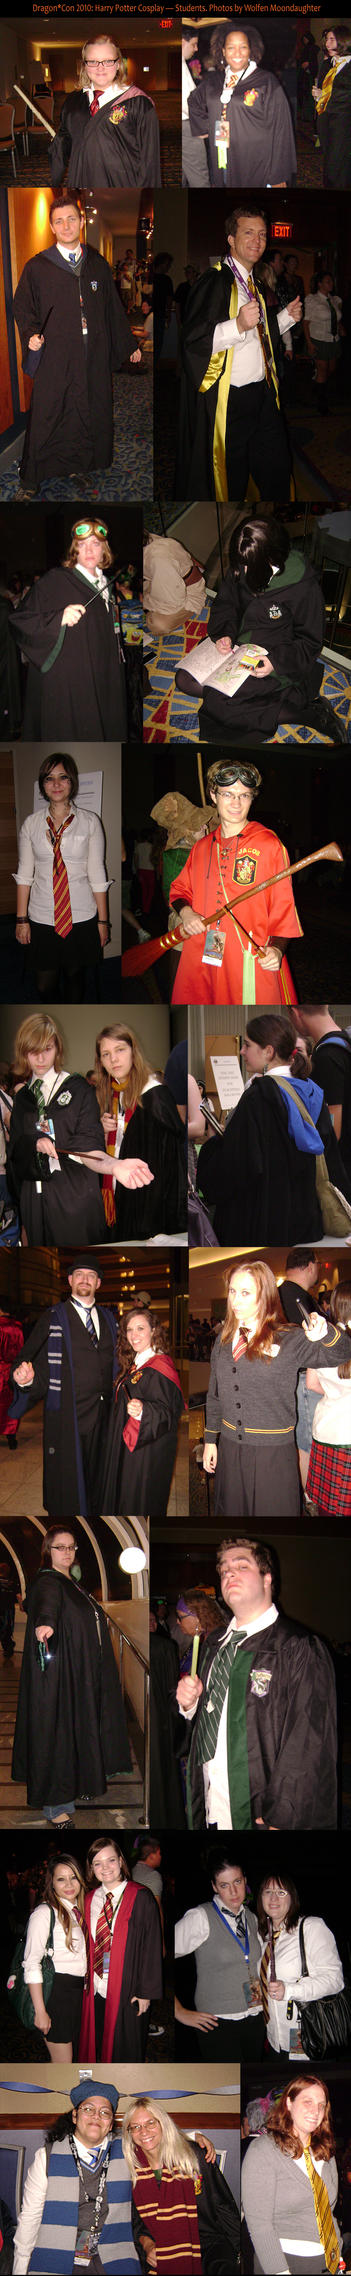 DragonCon 2010 HP Students by CanisCamera